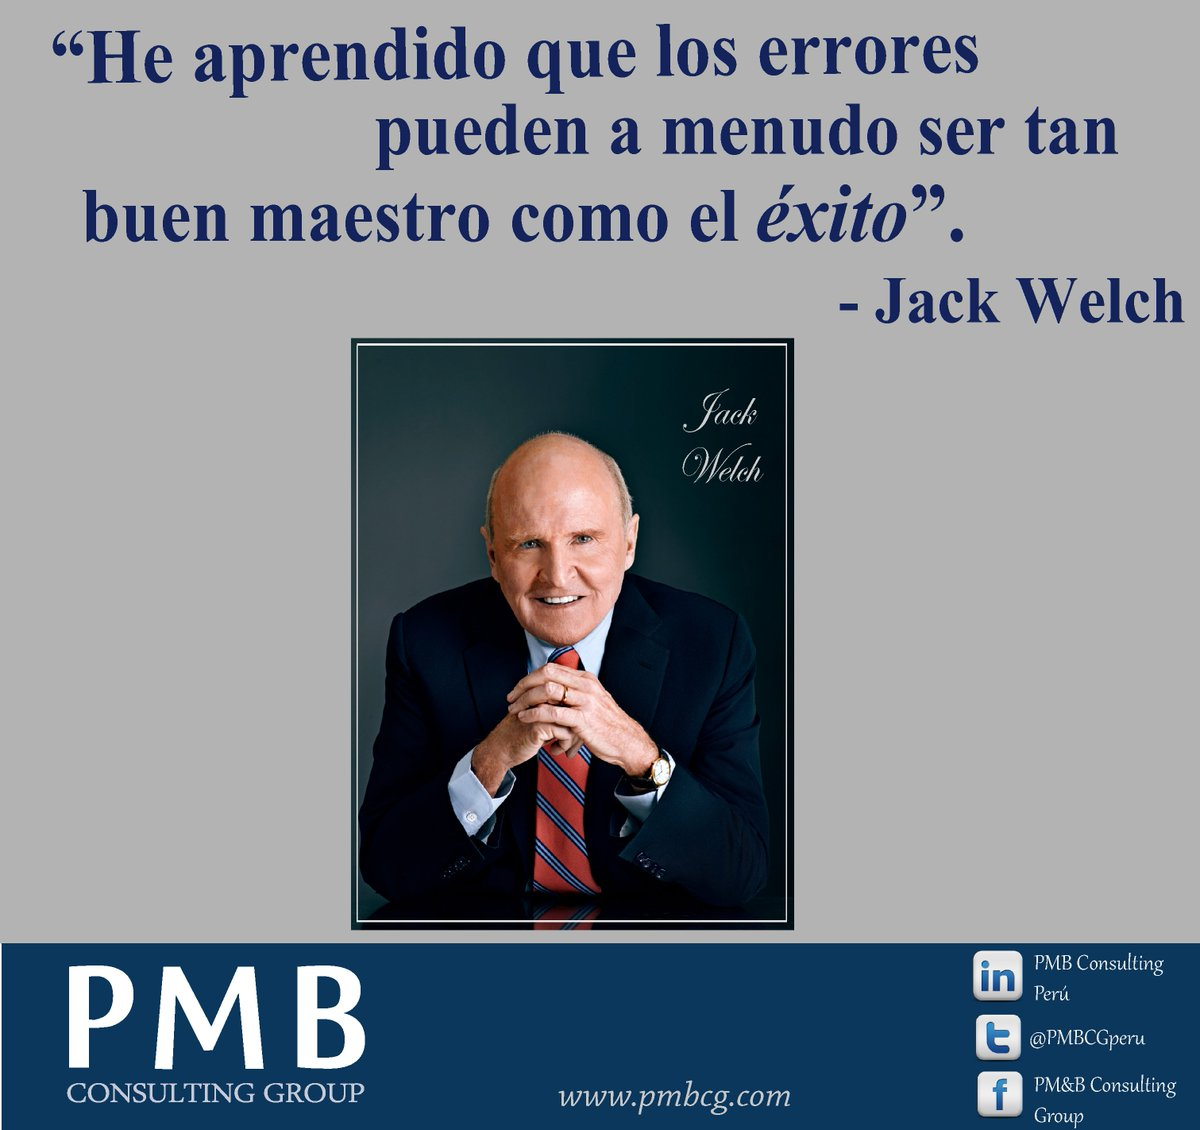 Pmb Consulting Perú On Twitter Quote Frase Del Día Jack